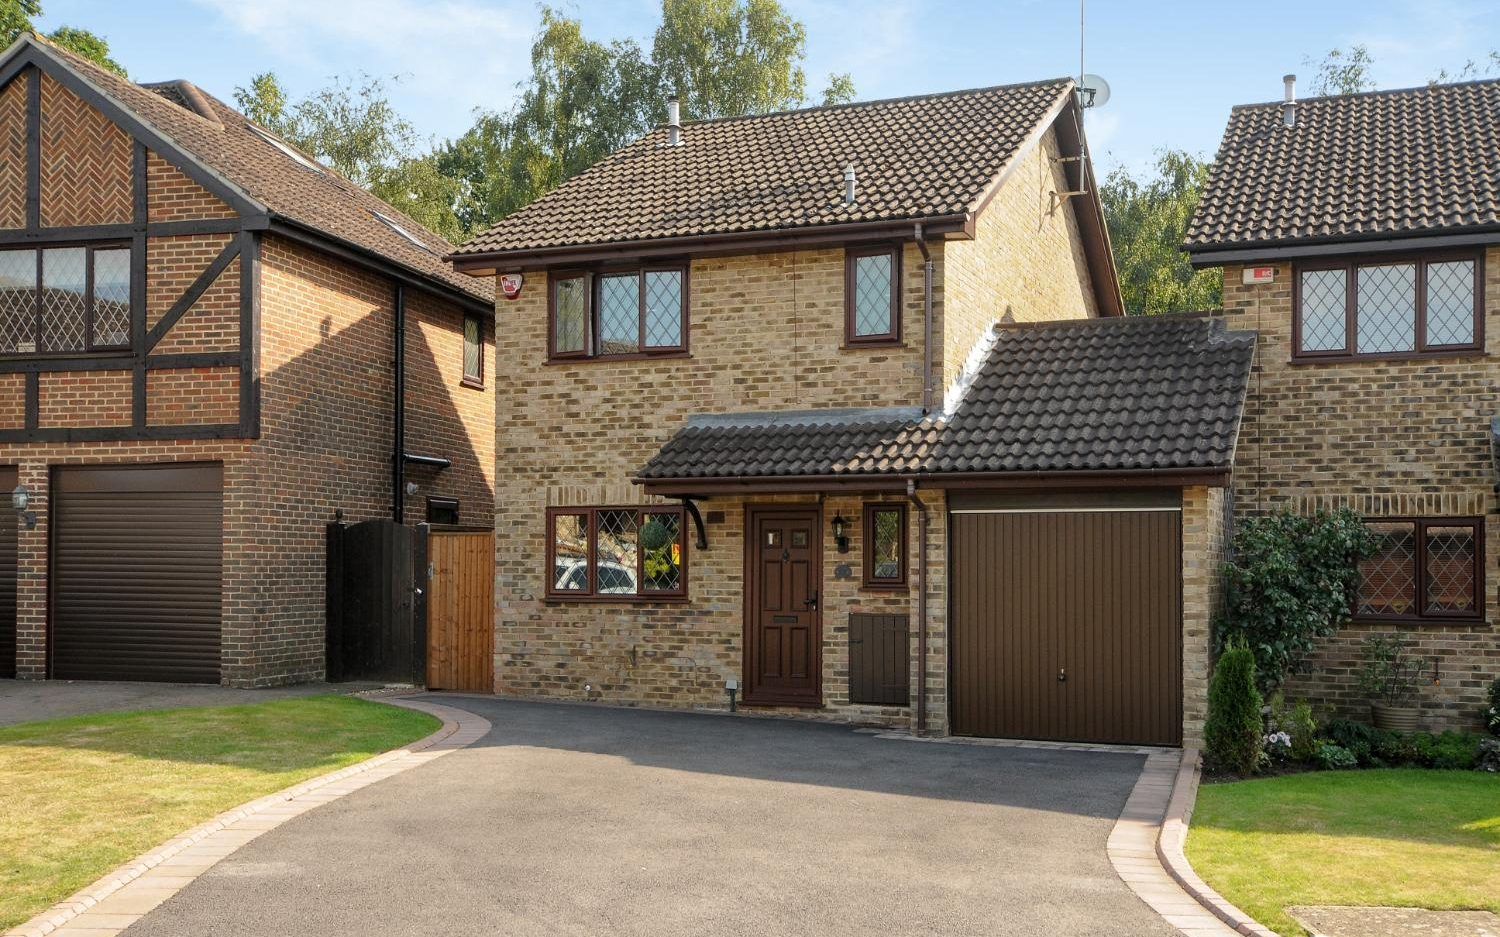 Harry Potter Welches Haus For Sale Harry Potter S Home In Privet Drive Complete With